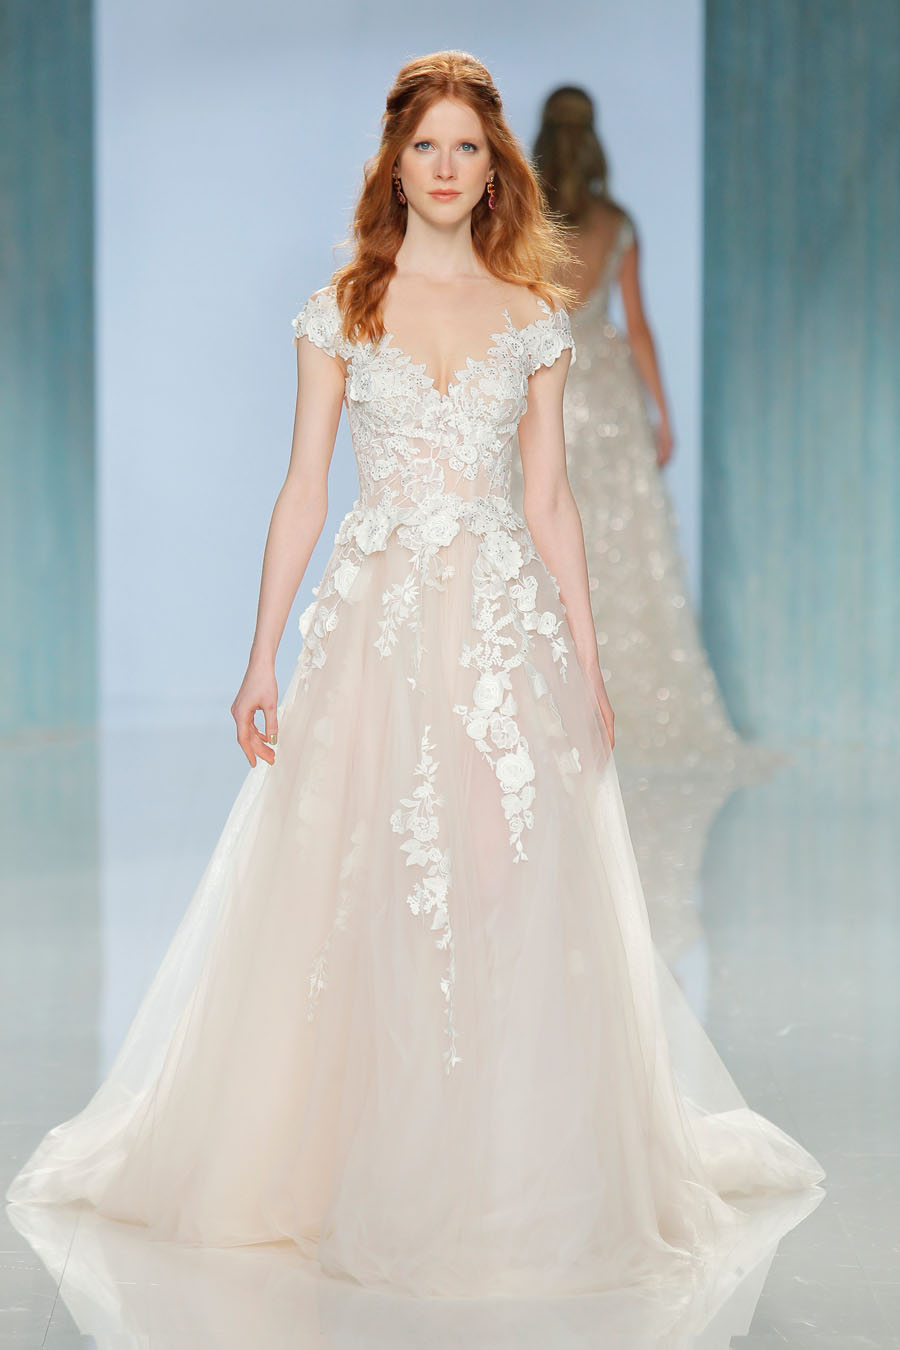 GALA Bridal Gown Collection - 902